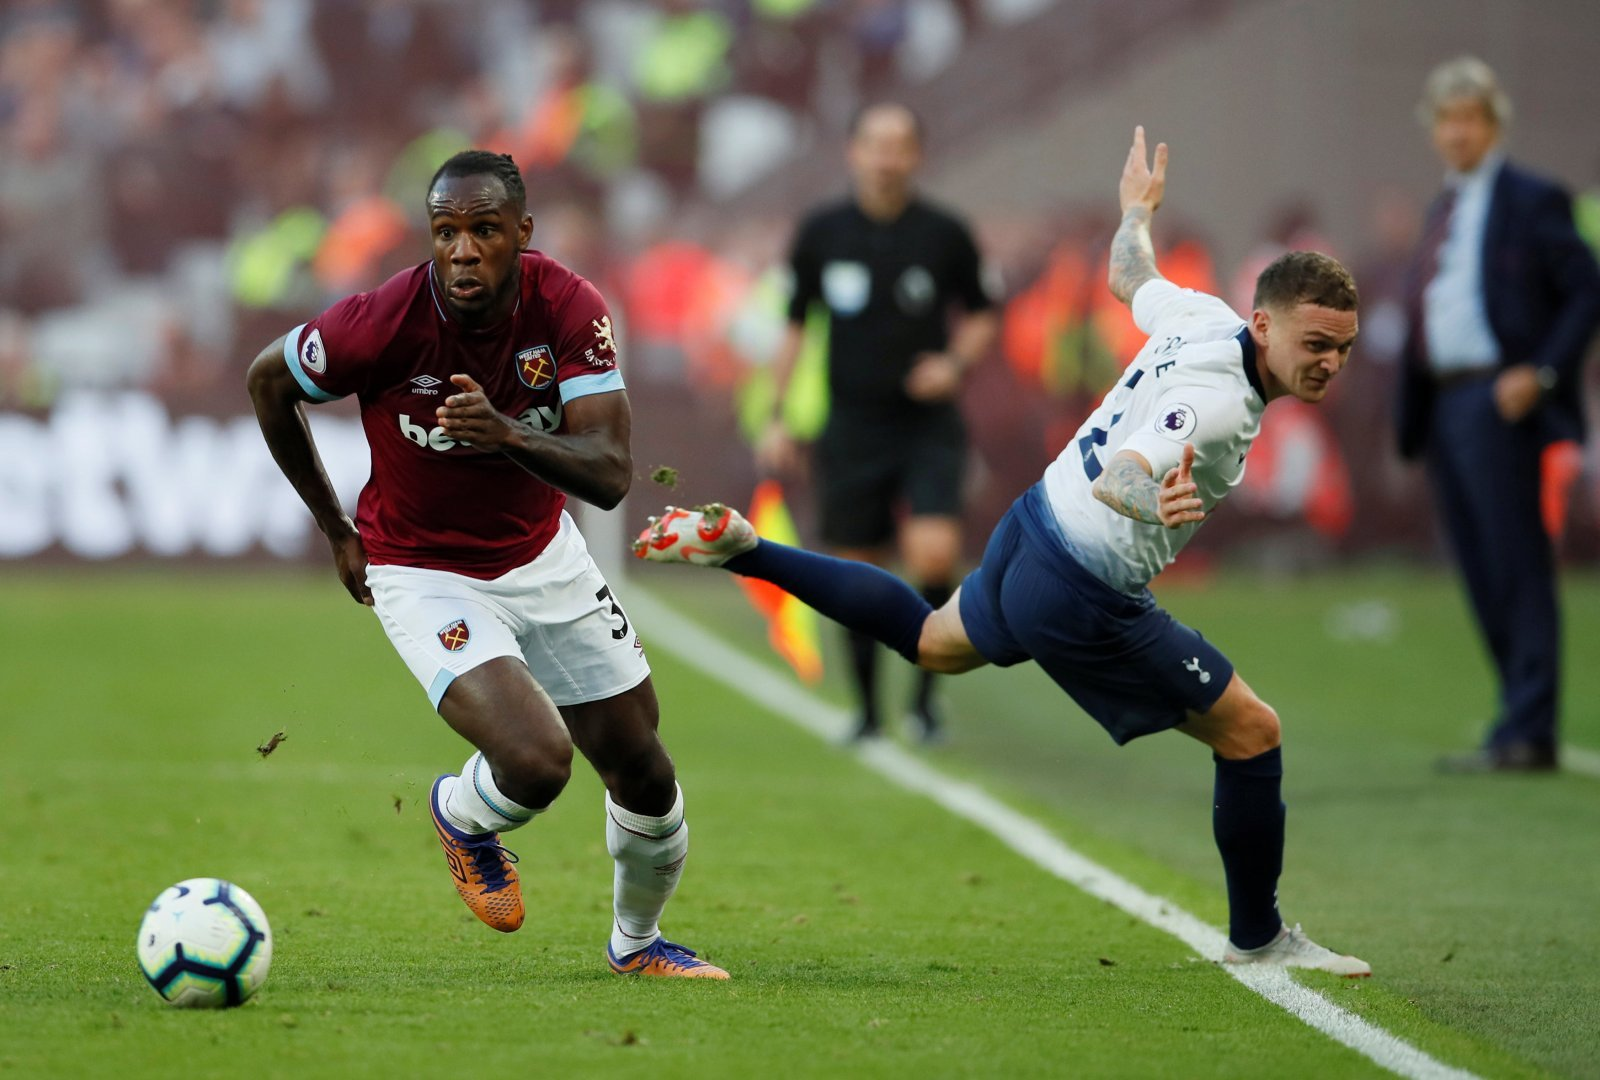 West Ham fans take to Twitter to laud superb Antonio after Fulham win